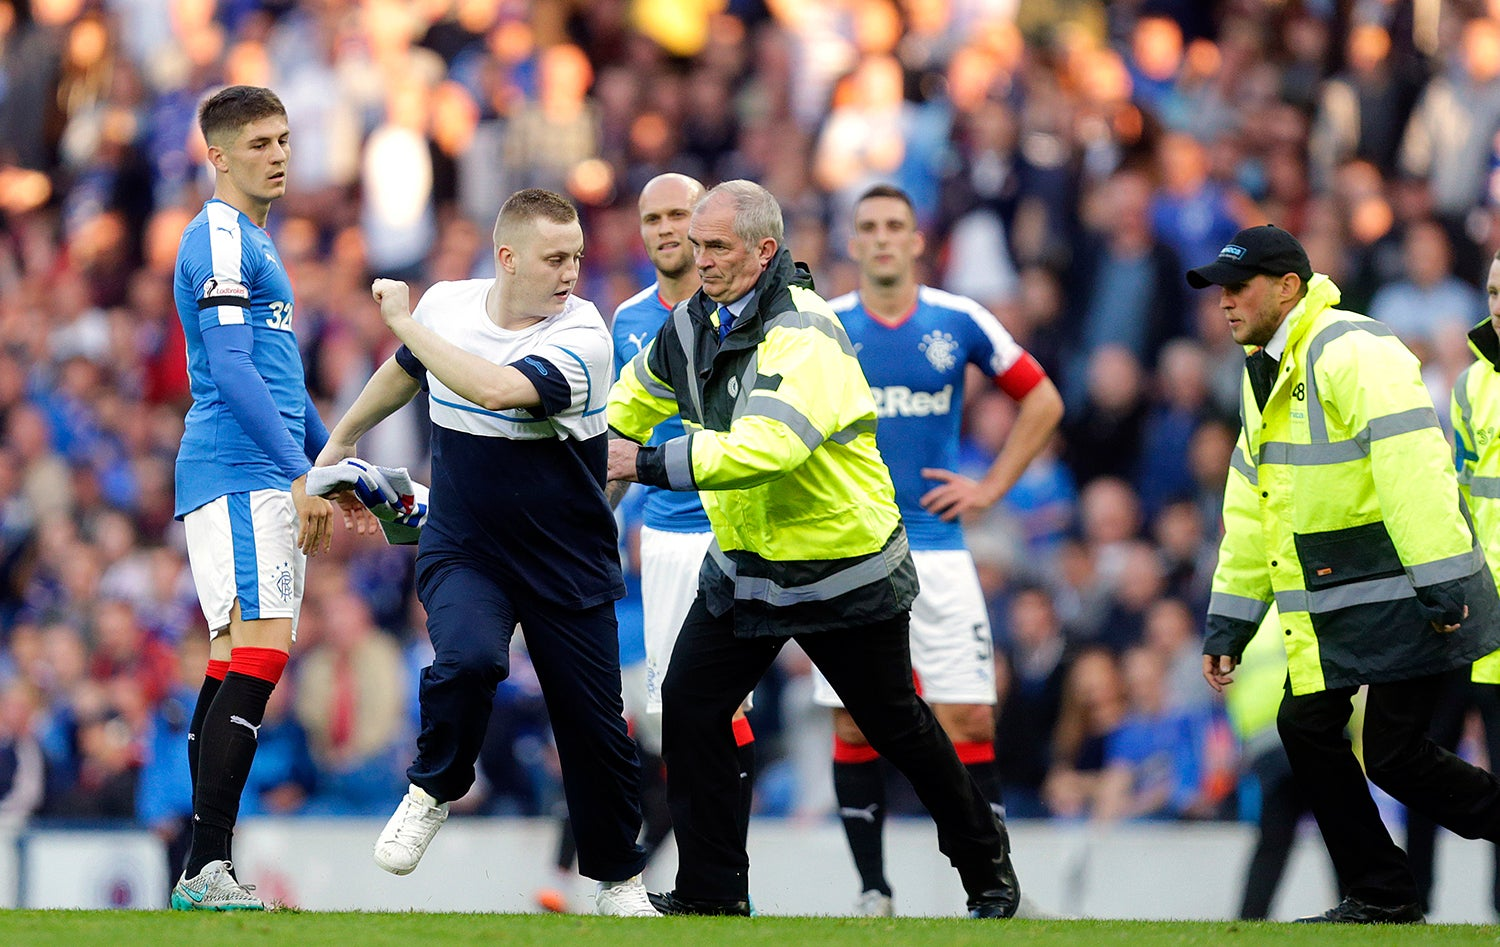 No estádio Ibrox em Glasgow - 2015 /Graham Stuart - Action Images via Reuters